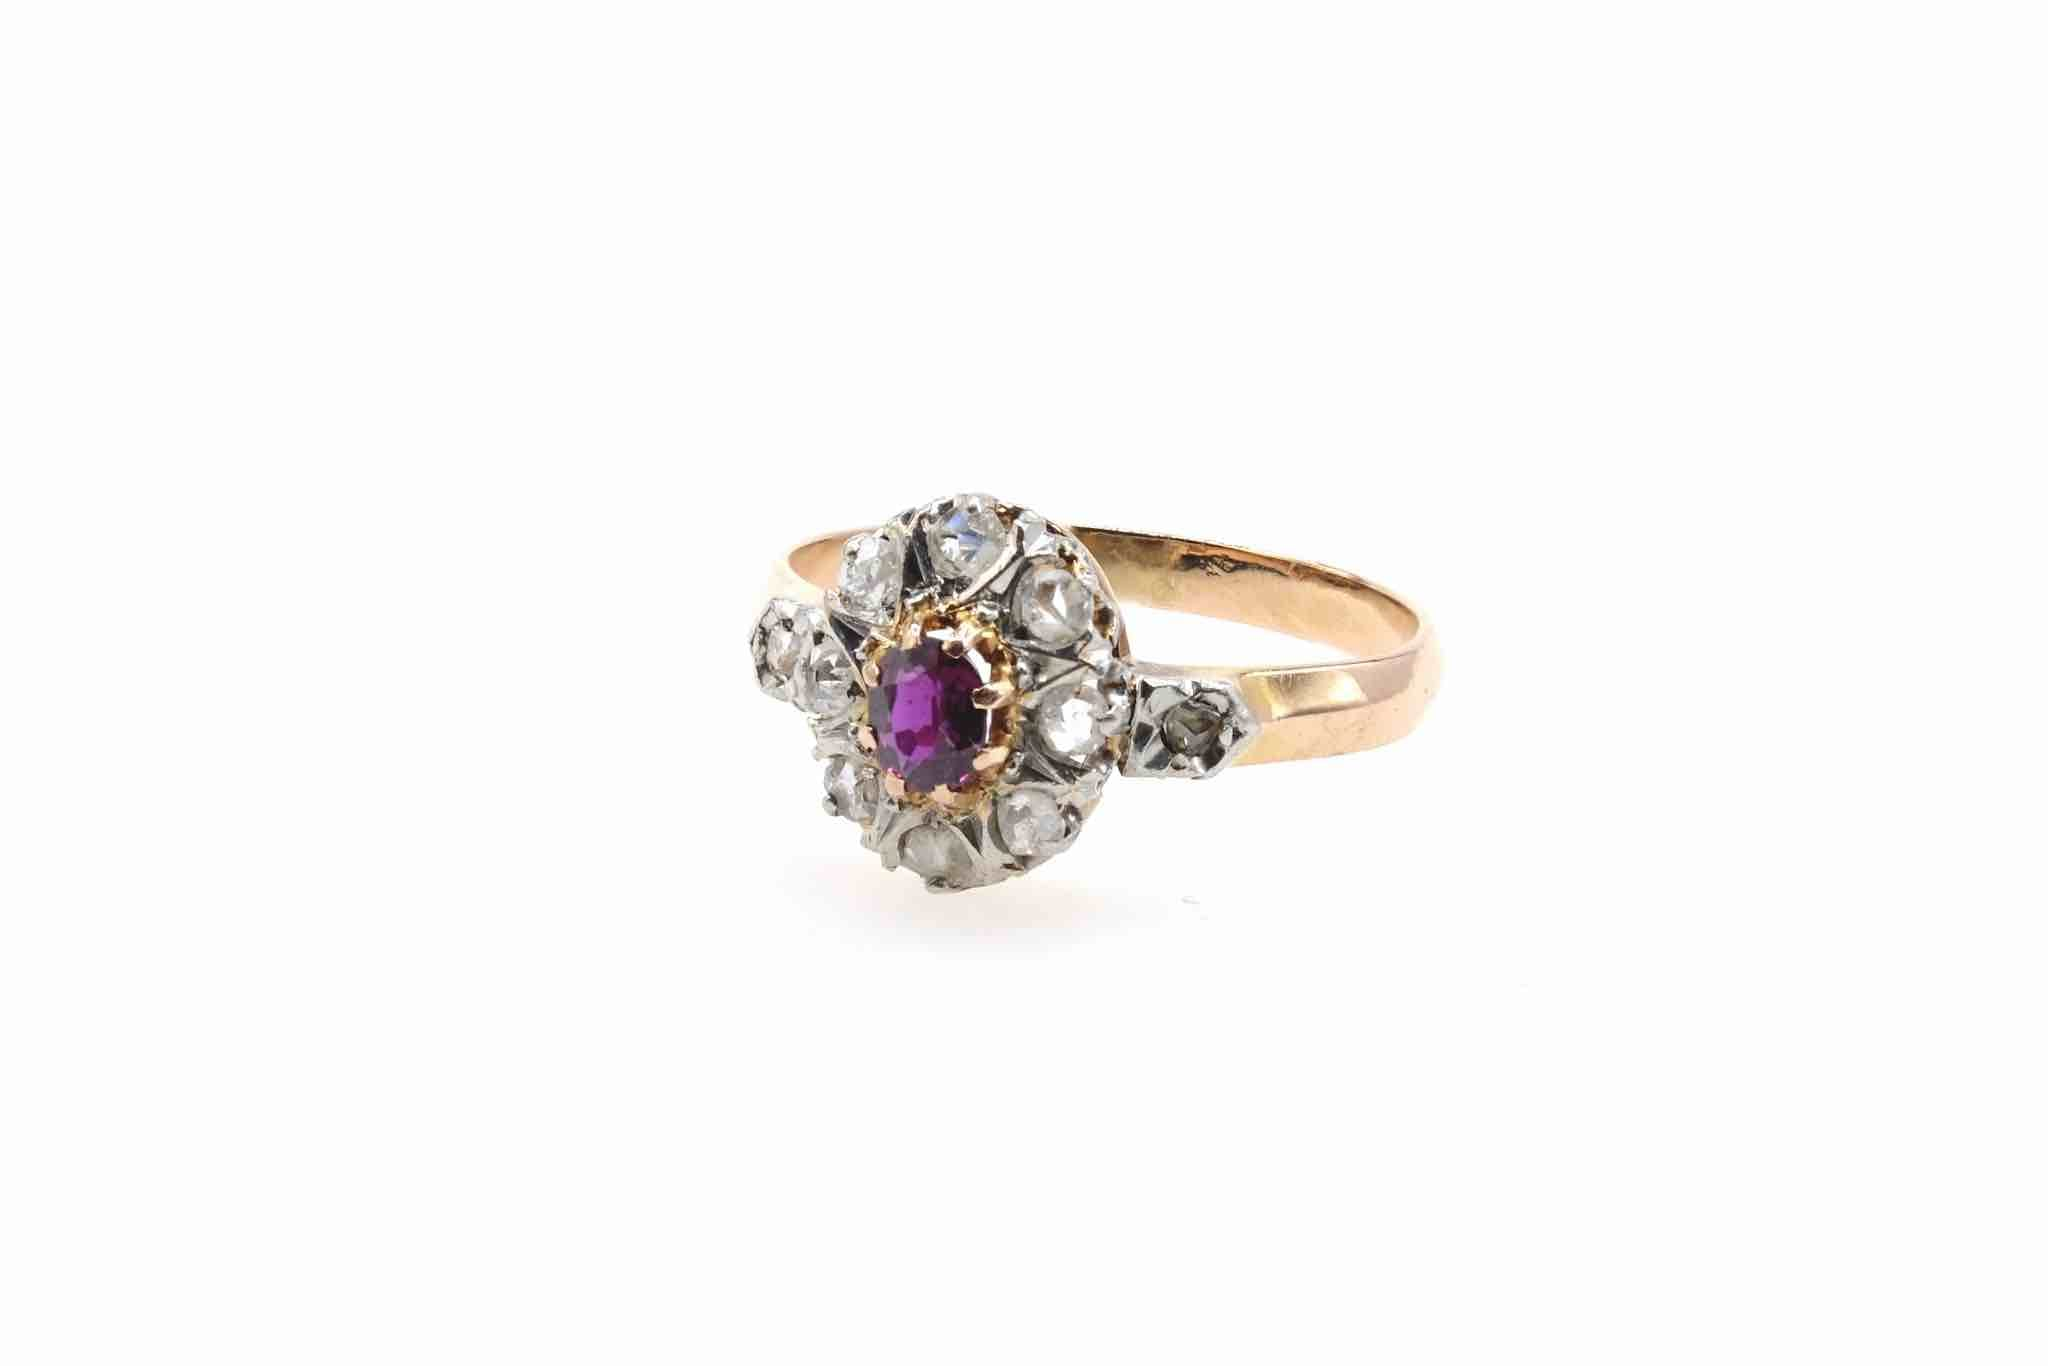 bague 19e rubis et diamants en or jaune 18k